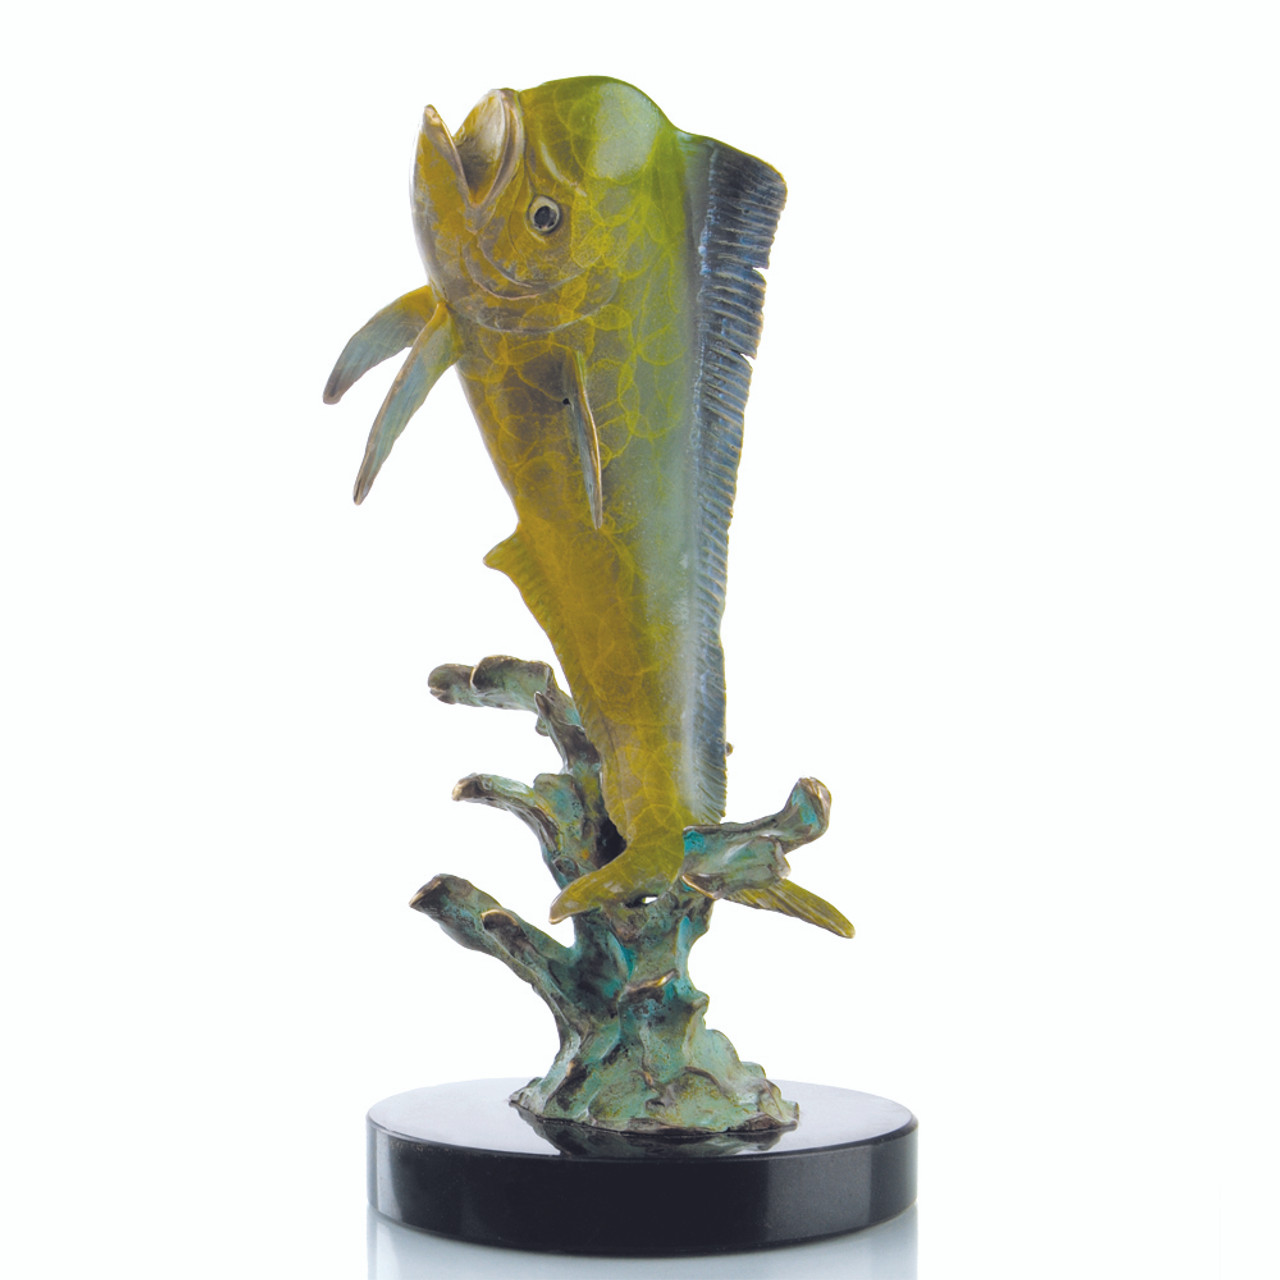 Little Bully Trophy Fish Decor (Mahi Mahi) Sculpture